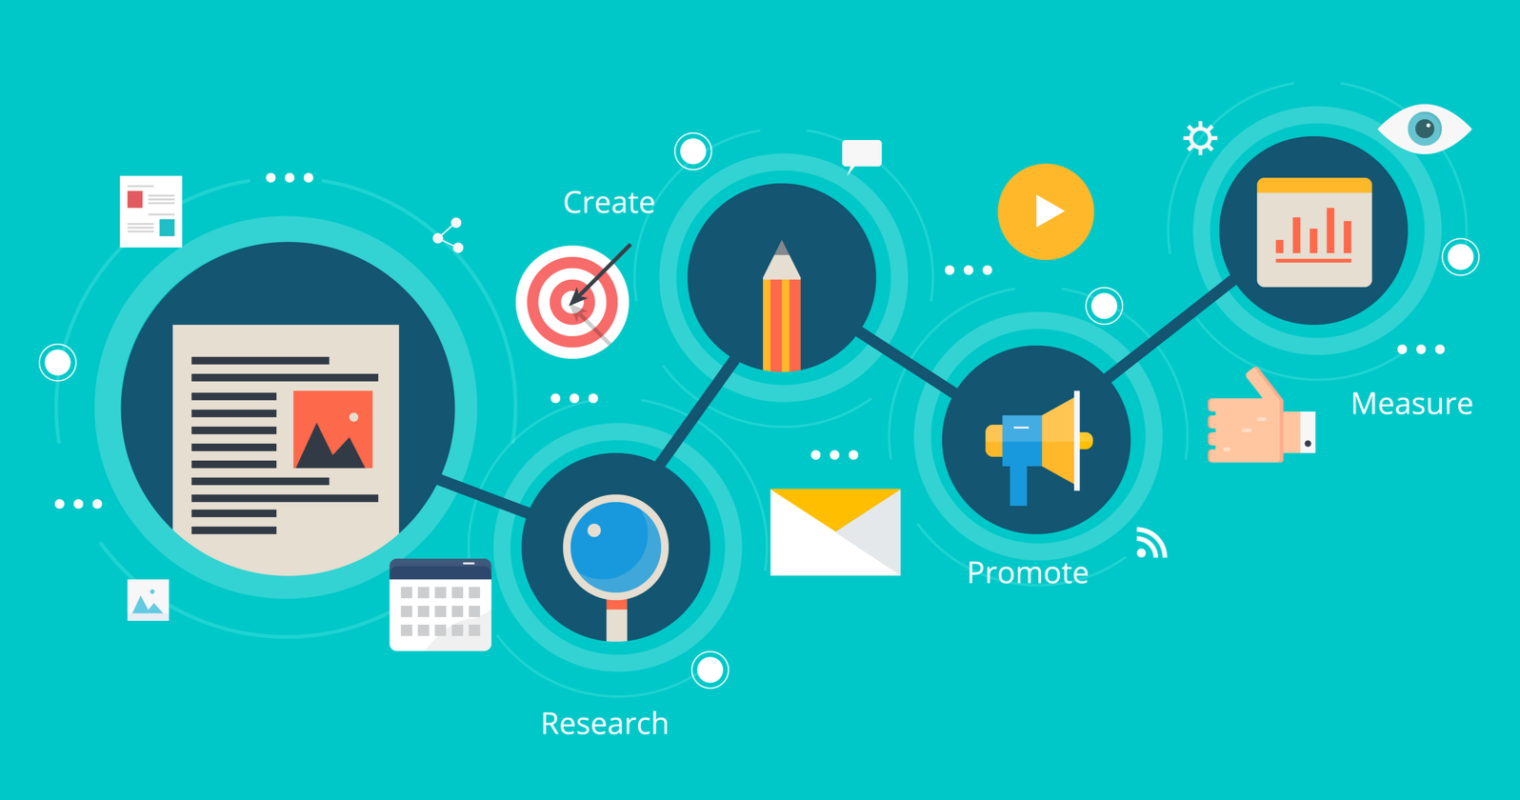 How to Create a Content Strategy for Both Users & Search Engines